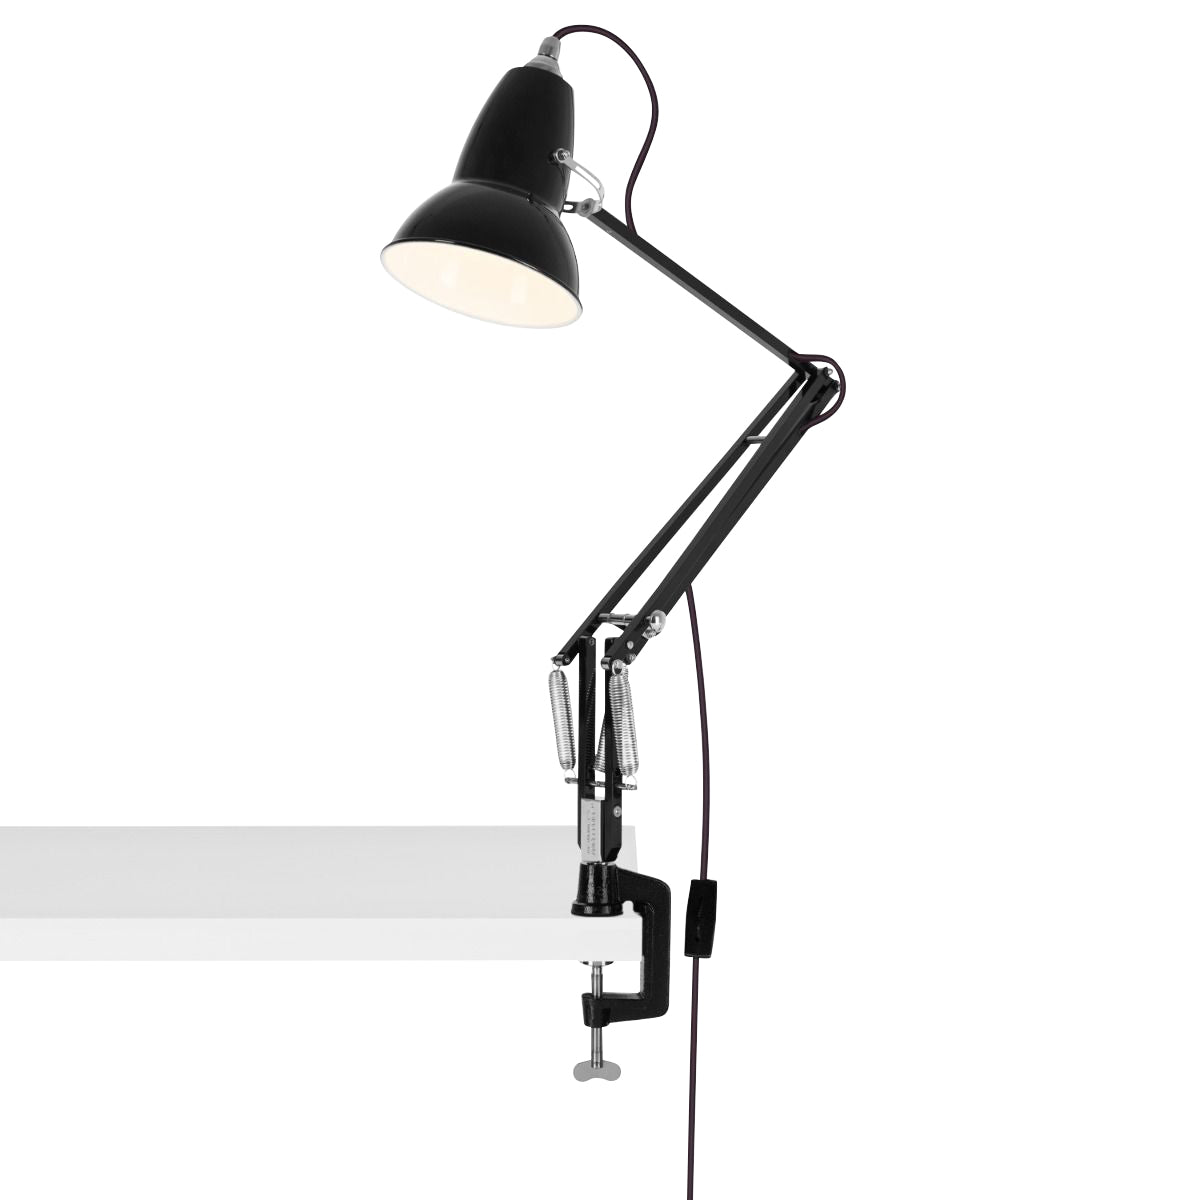 Anglepoise Original 1227 Desk Lamp with Clamp Jet Black